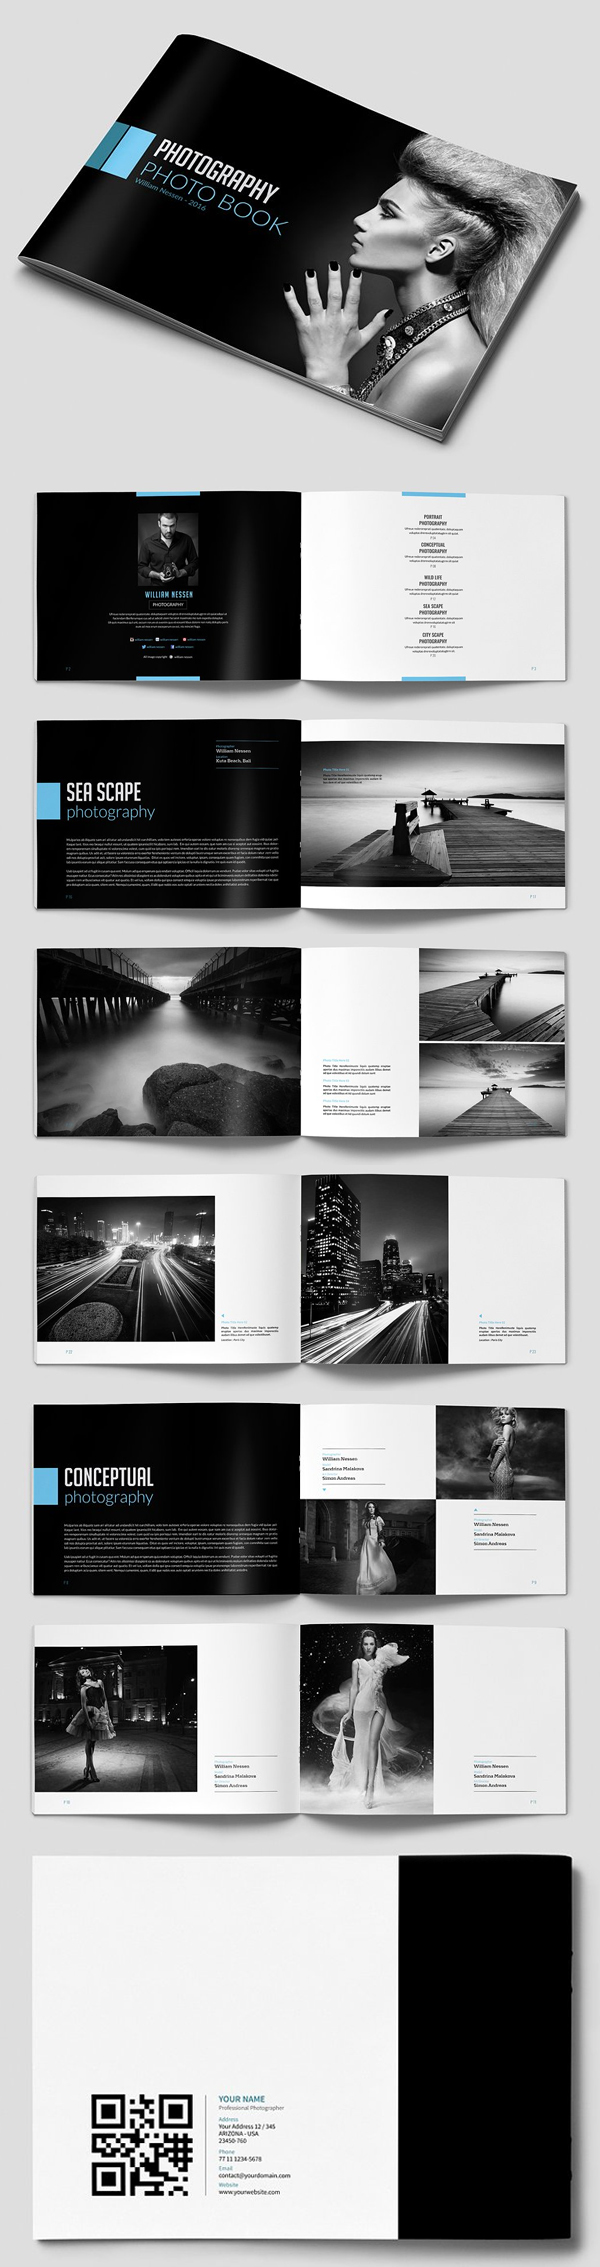 100 Professional Corporate Brochure Templates - 43